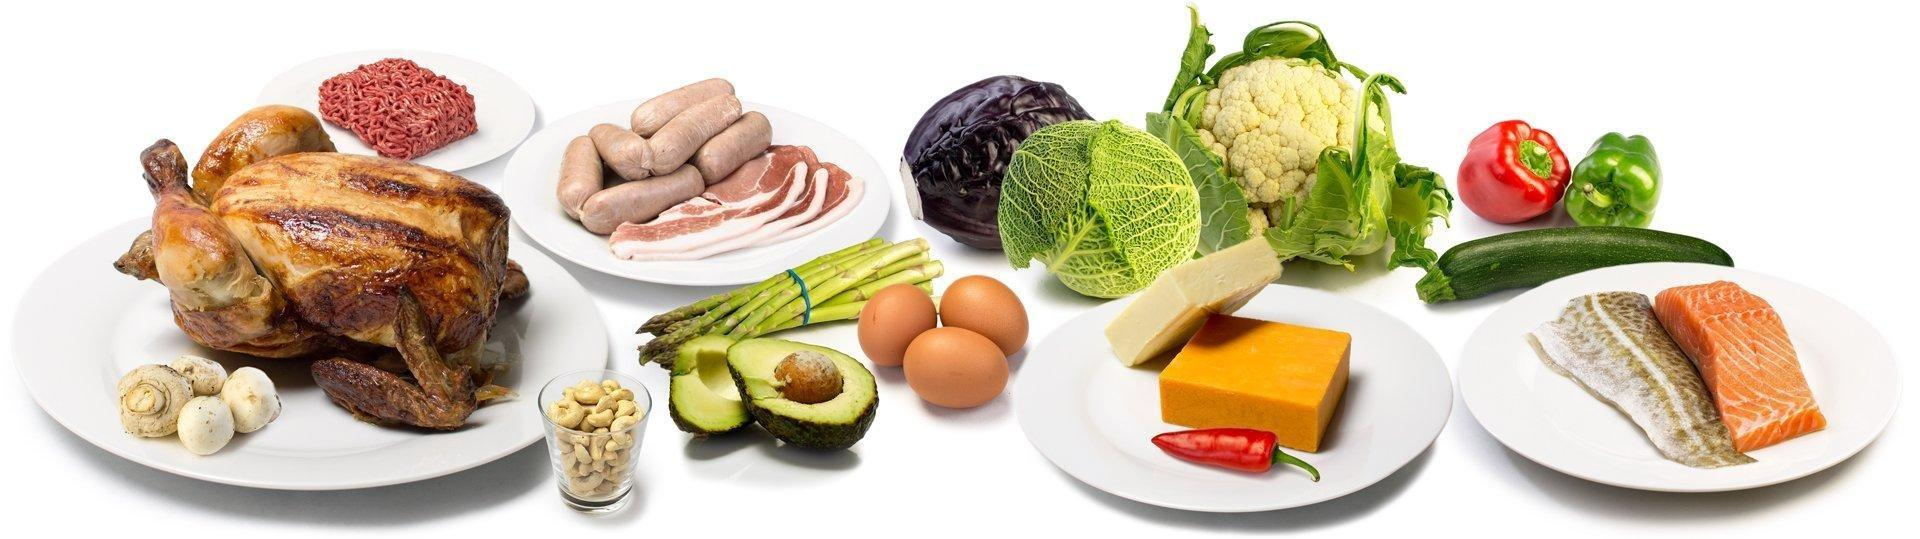 Diabetes And Low Carbohydrate Diets